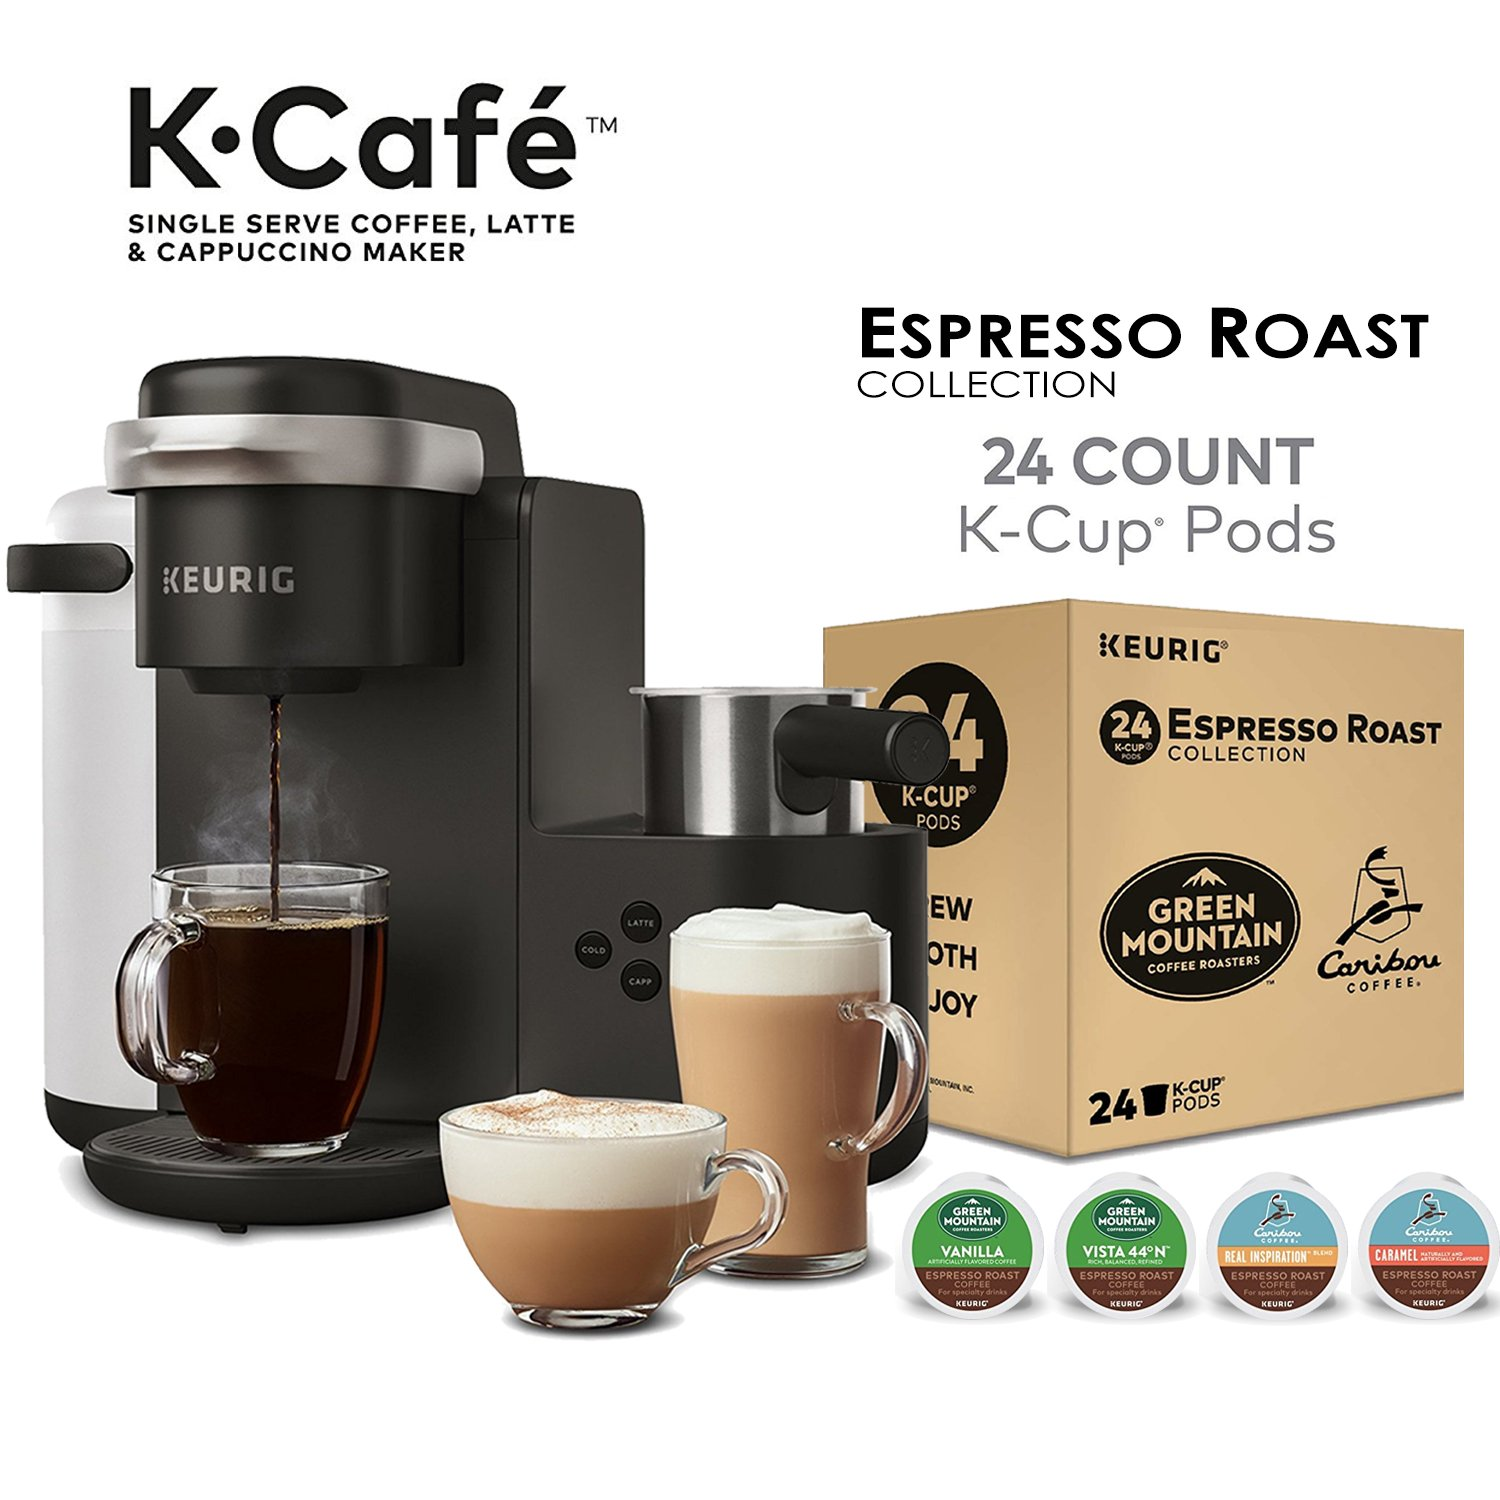 Keurig® K-Cafe Single Serve